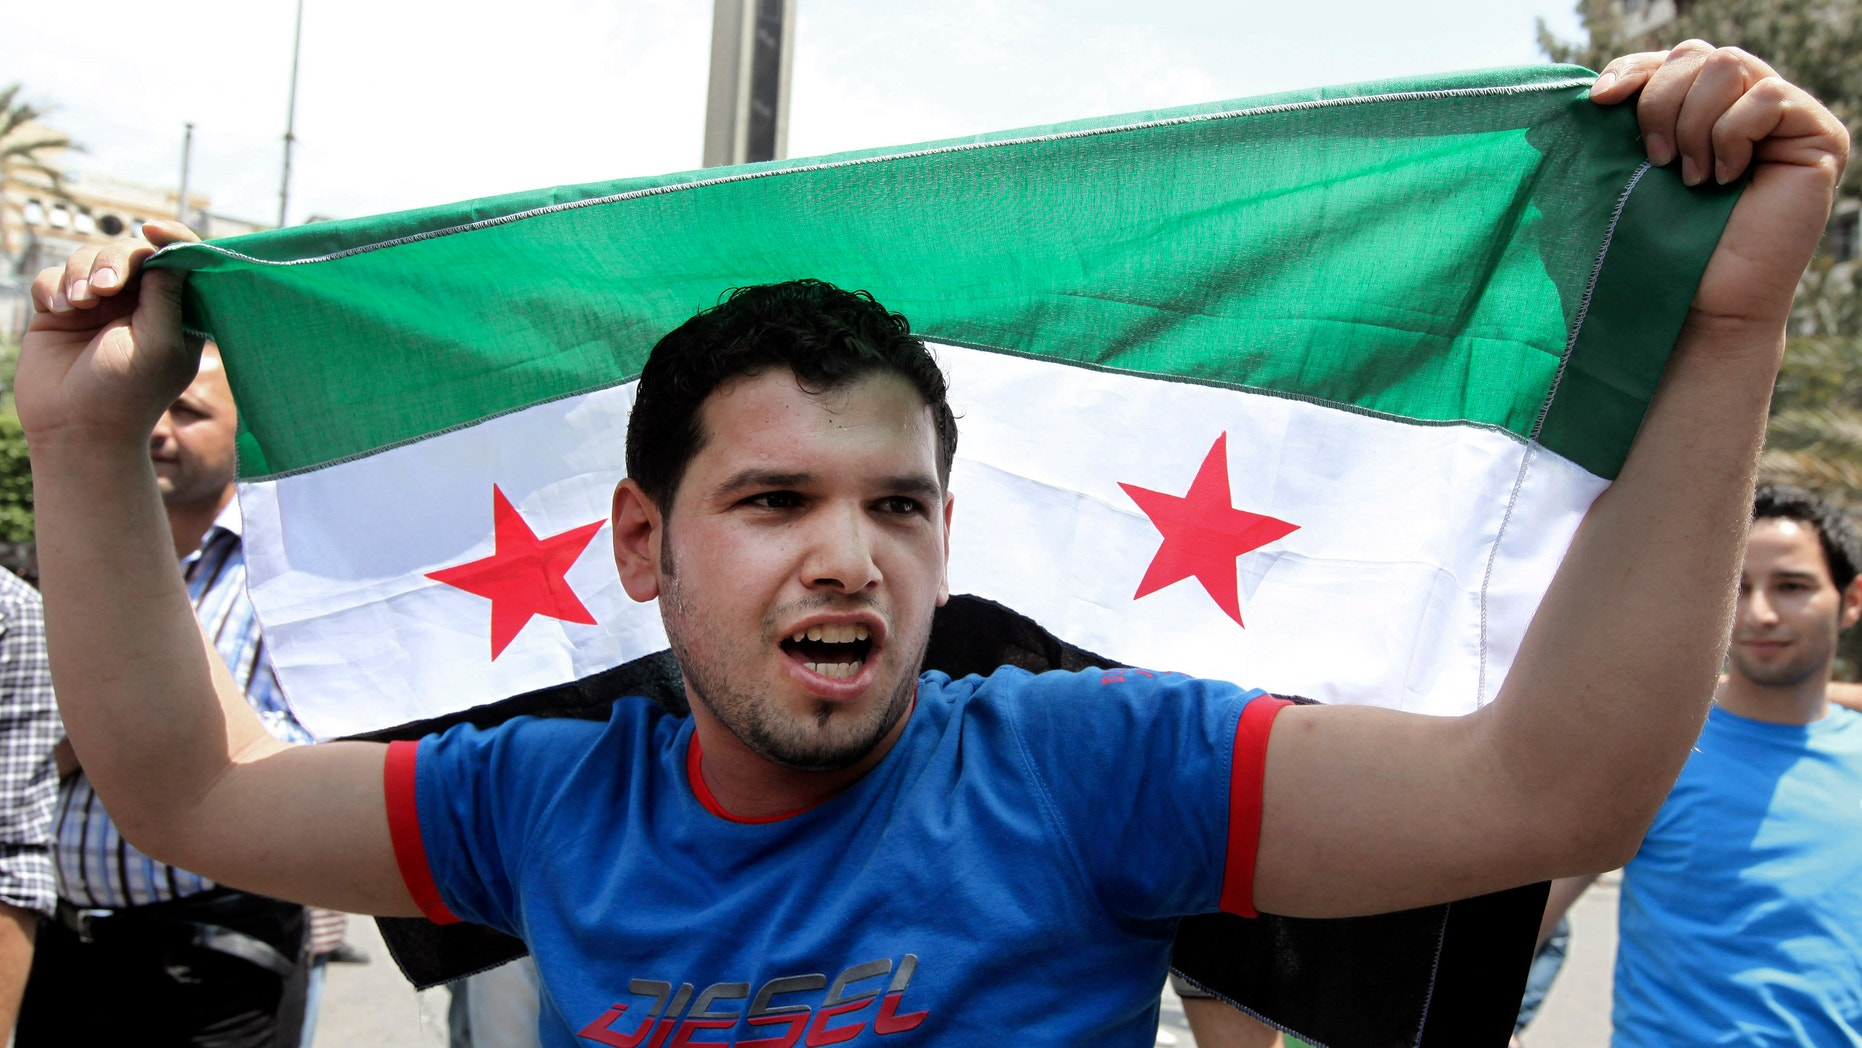 May 18, 2012: An anti-Syrian regime protester, chants slogans during a demonstration to show solidarity with the Syrian revolution in Beirut, Lebanon.